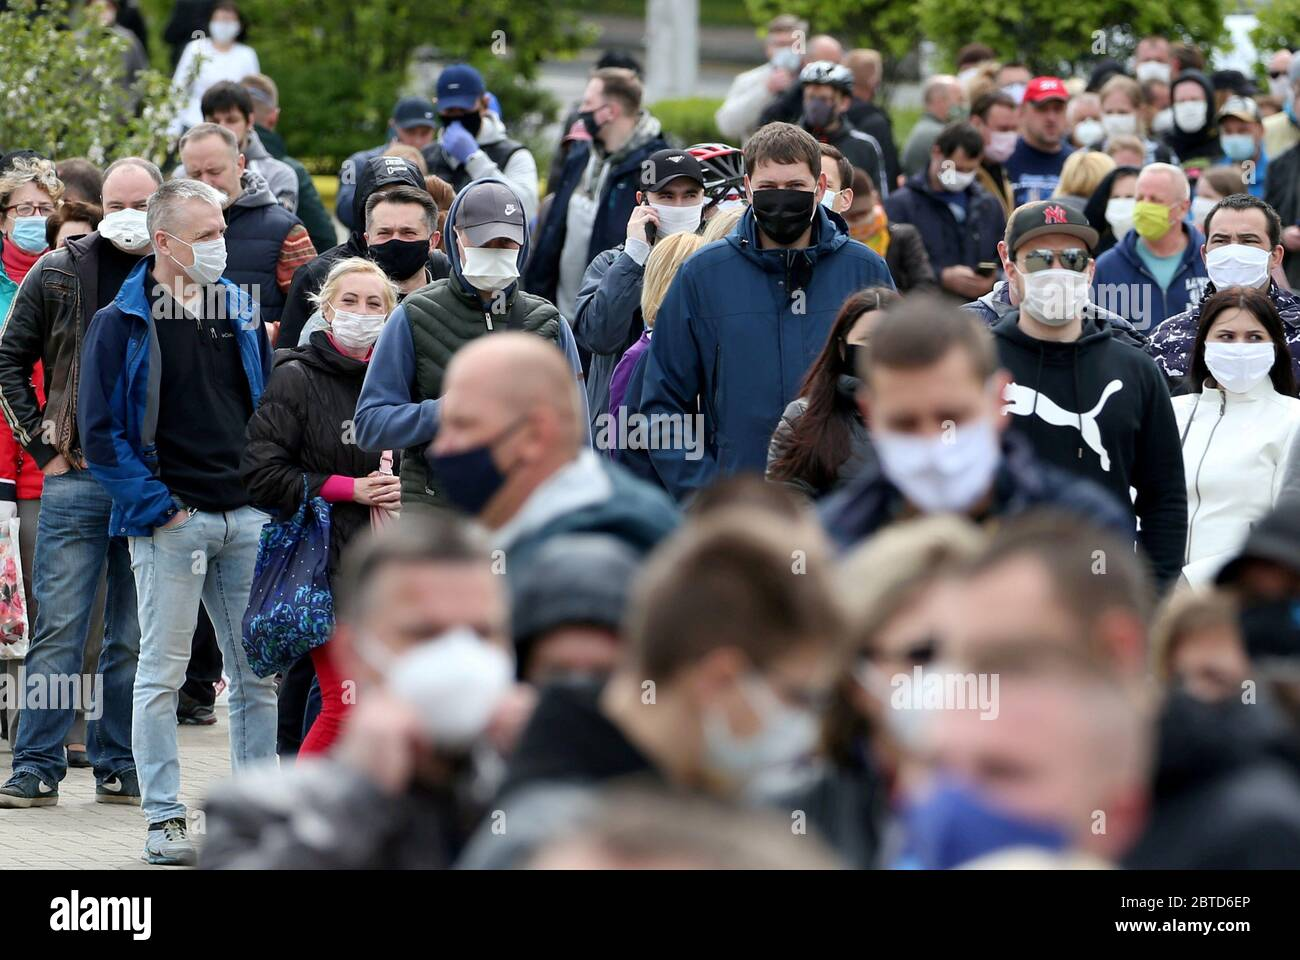 Minsk, Belarus. 24th May, 2020. People in face masks queue to add their signatures in support of presidential candidate Svetlana Tikhanovskaya (not pictured) during a rally outside Komarovsky Market organised by activists to collect signatures in support of 15 presidential hopefuls. The campaign in support of potential presidential candidates started on 21 May. Belarus is to hold a presidential election on 9 August 2020. Credit: Natalia Fedosenko/TASS/Alamy Live News Stock Photo